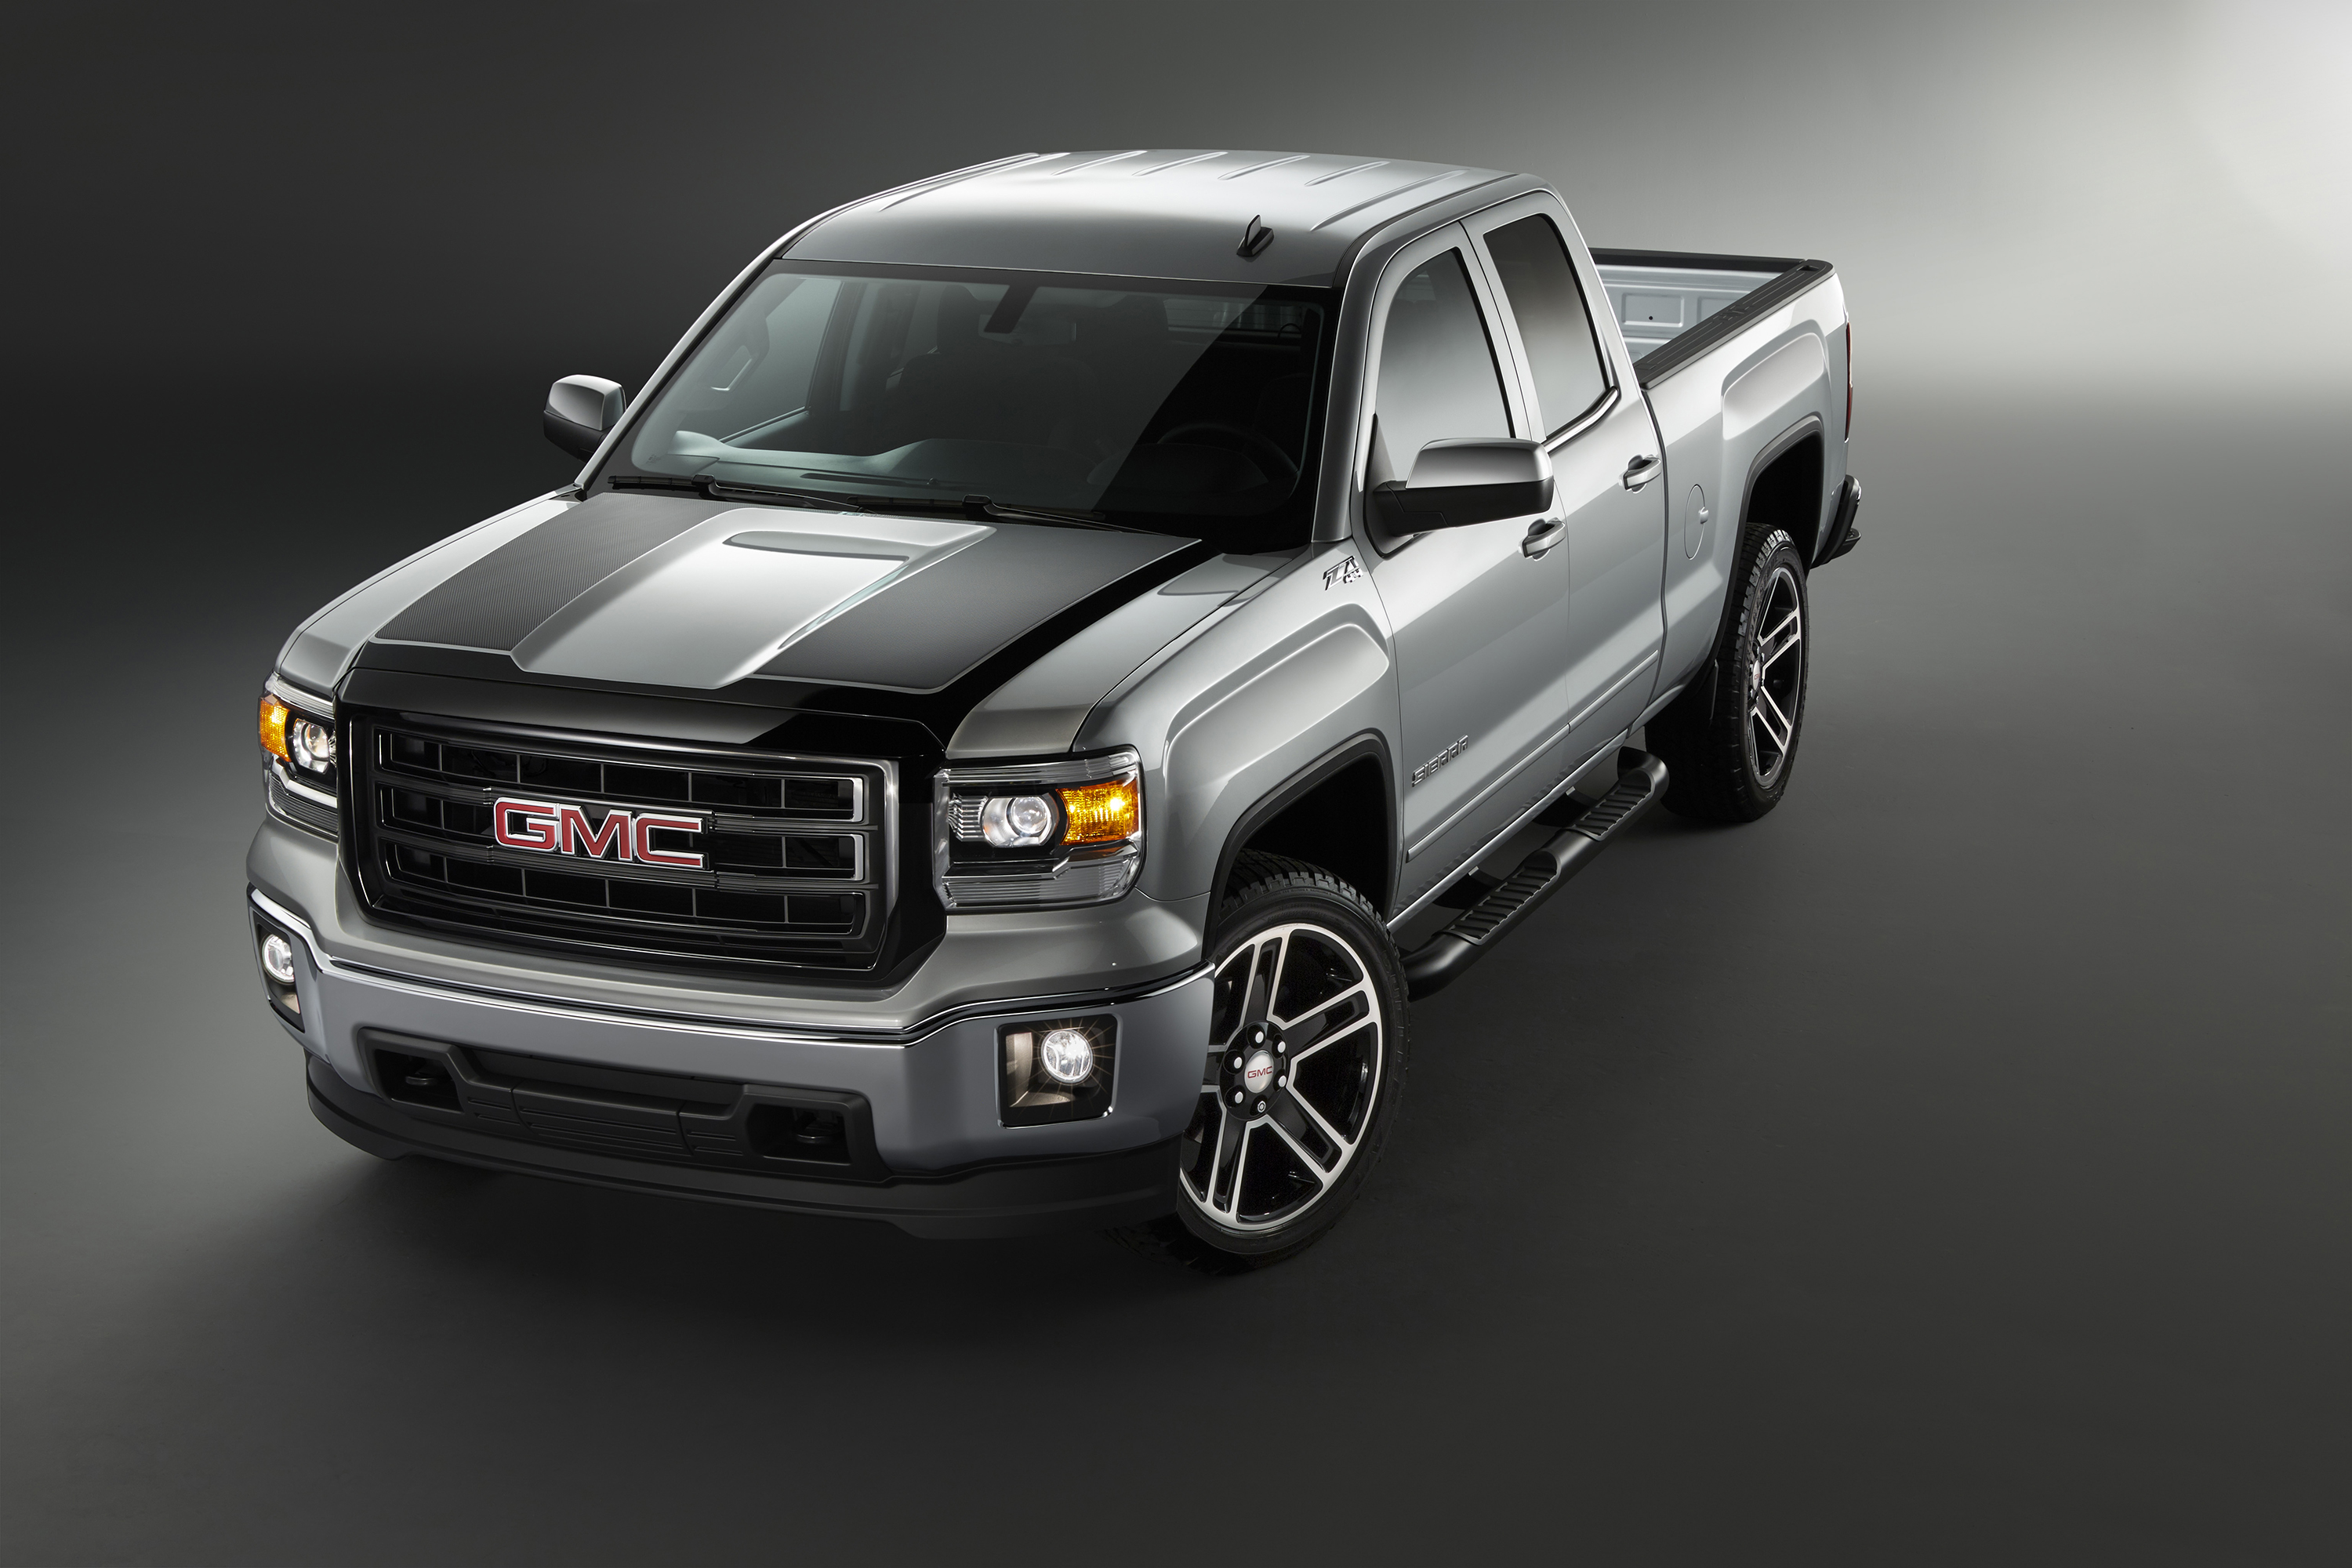 2015 GMC Sierra Carbon Edition is Loaded with Attitude - autoevolution